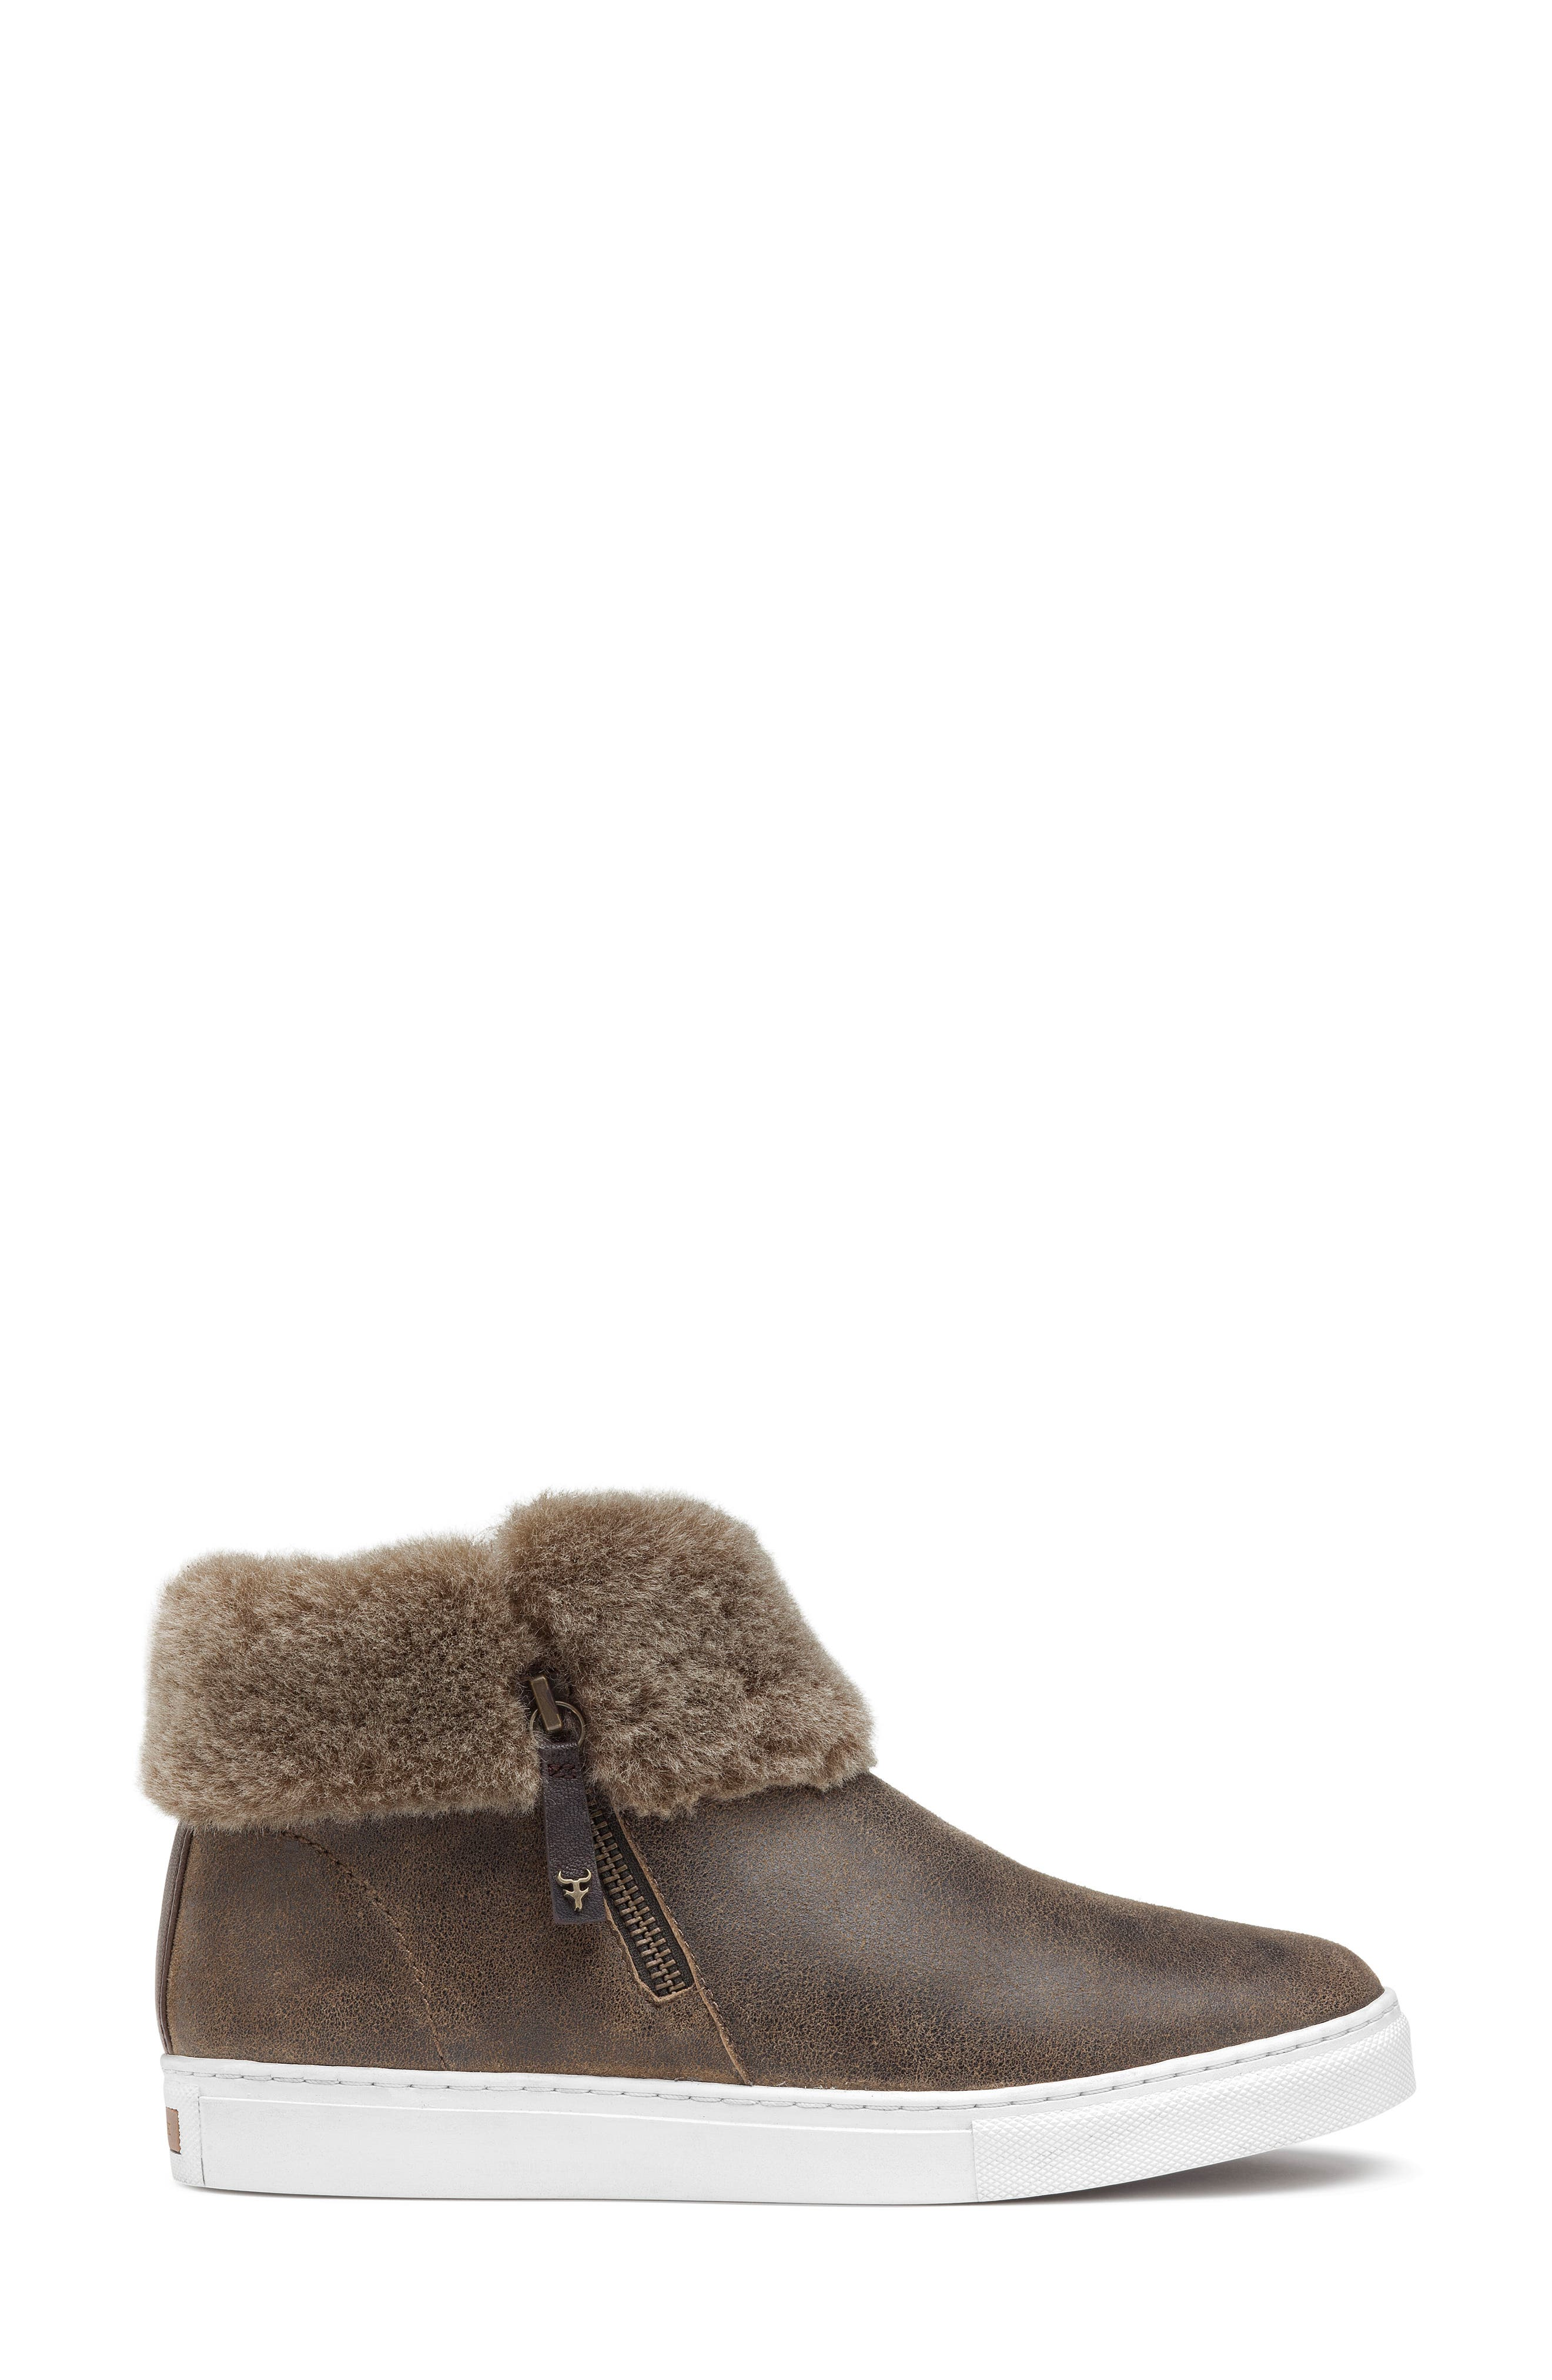 TRASK, Lexi Genuine Shearling Sneaker, Alternate thumbnail 3, color, BROWN LEATHER